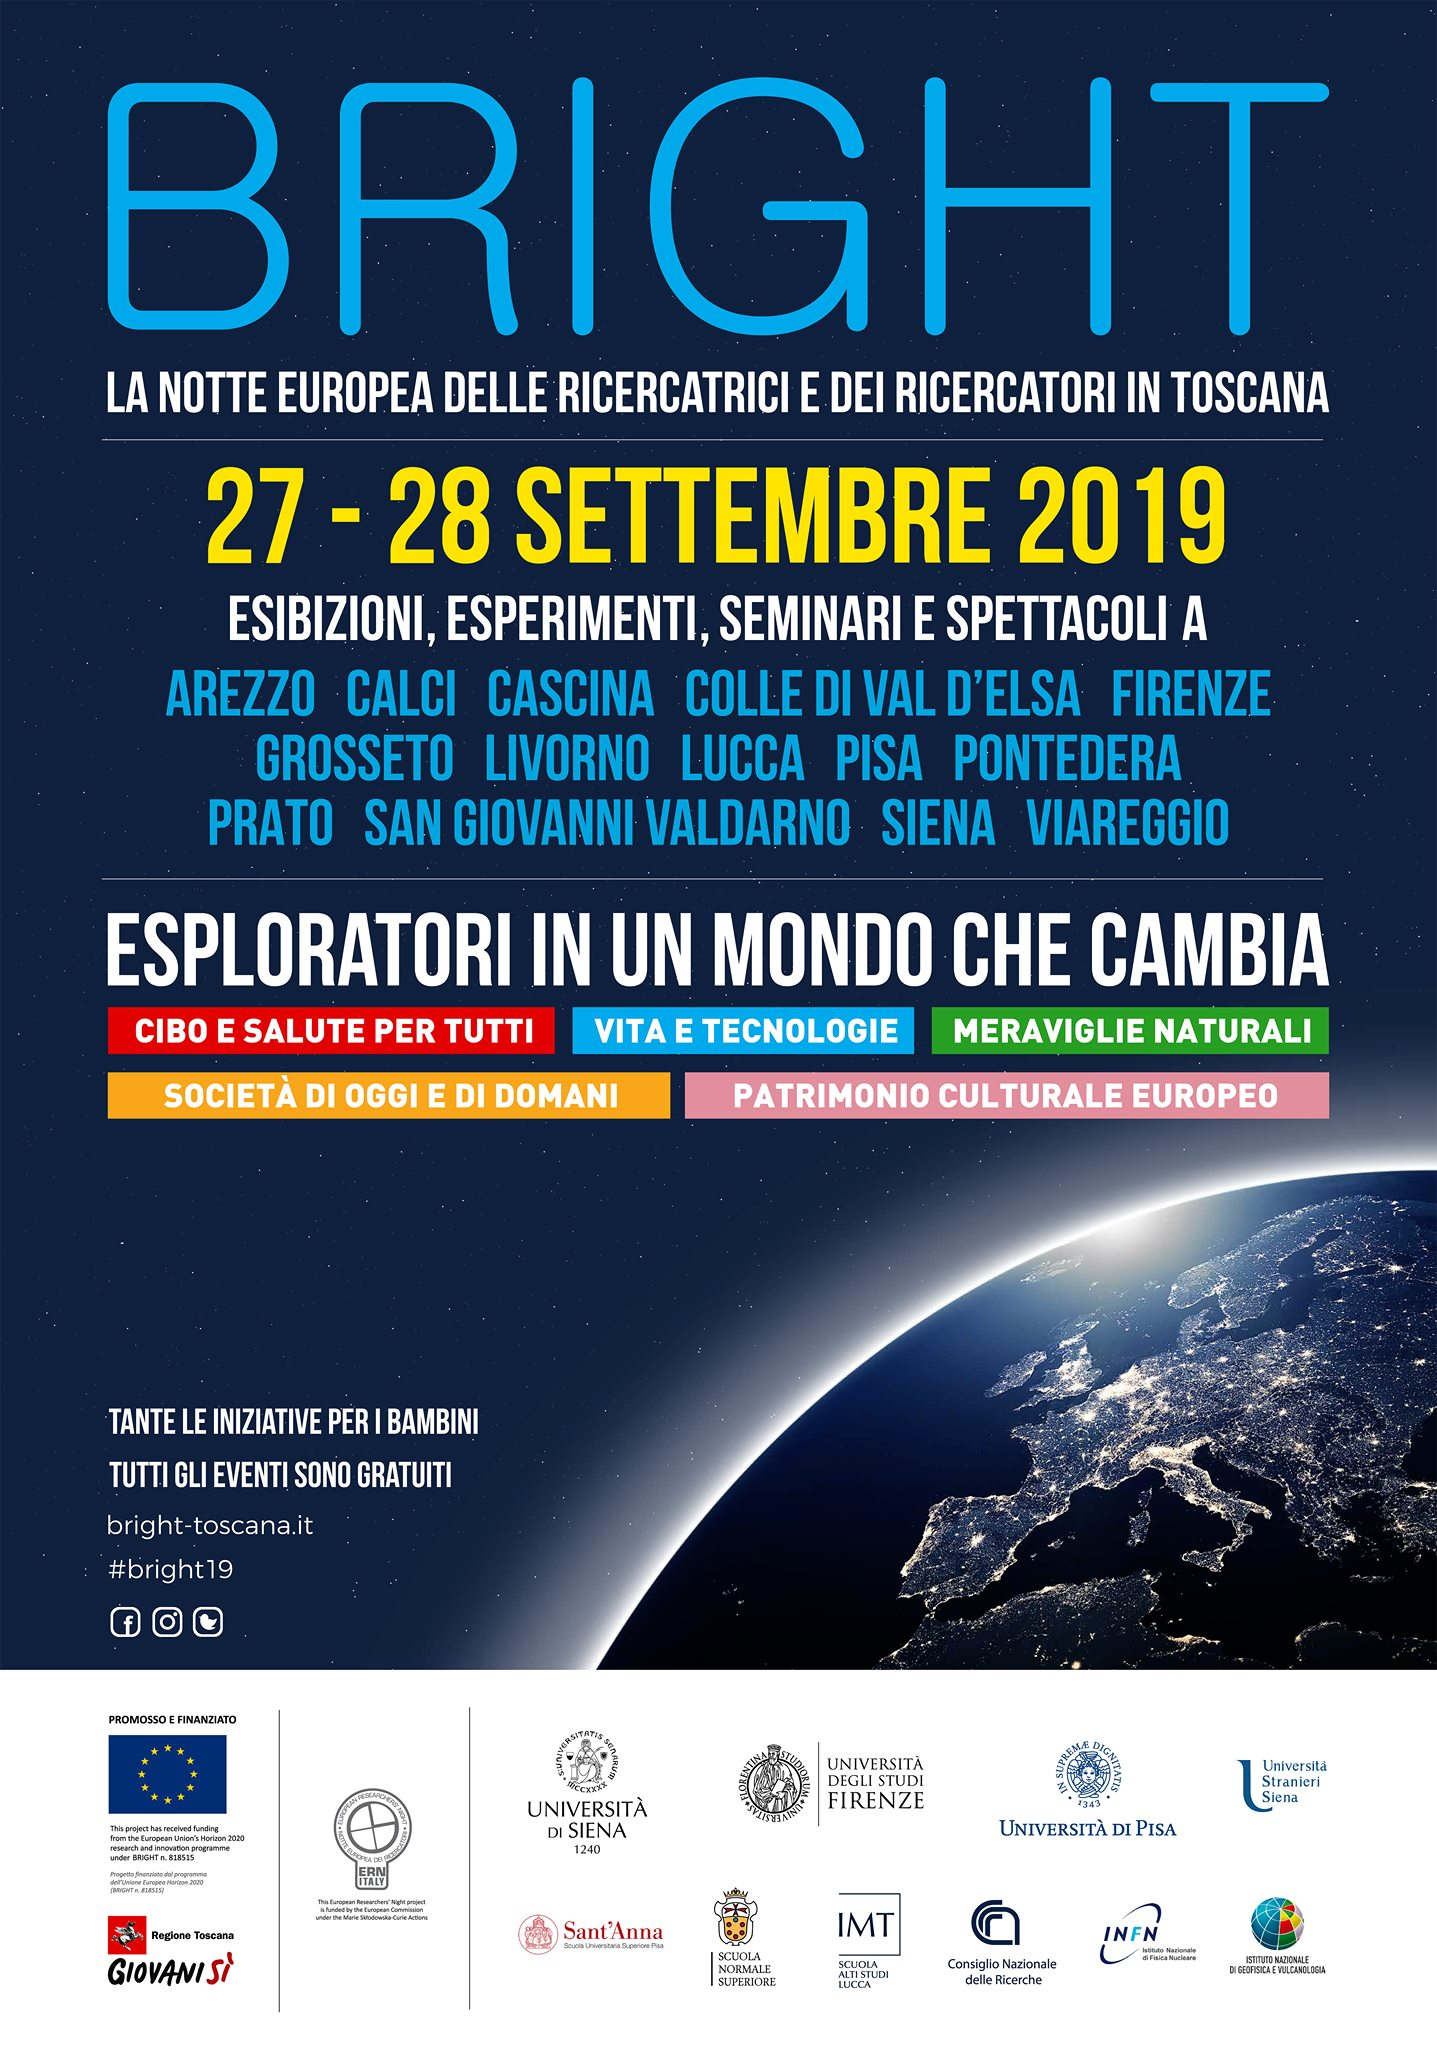 Bright: The Researchers' Night in Tuscany